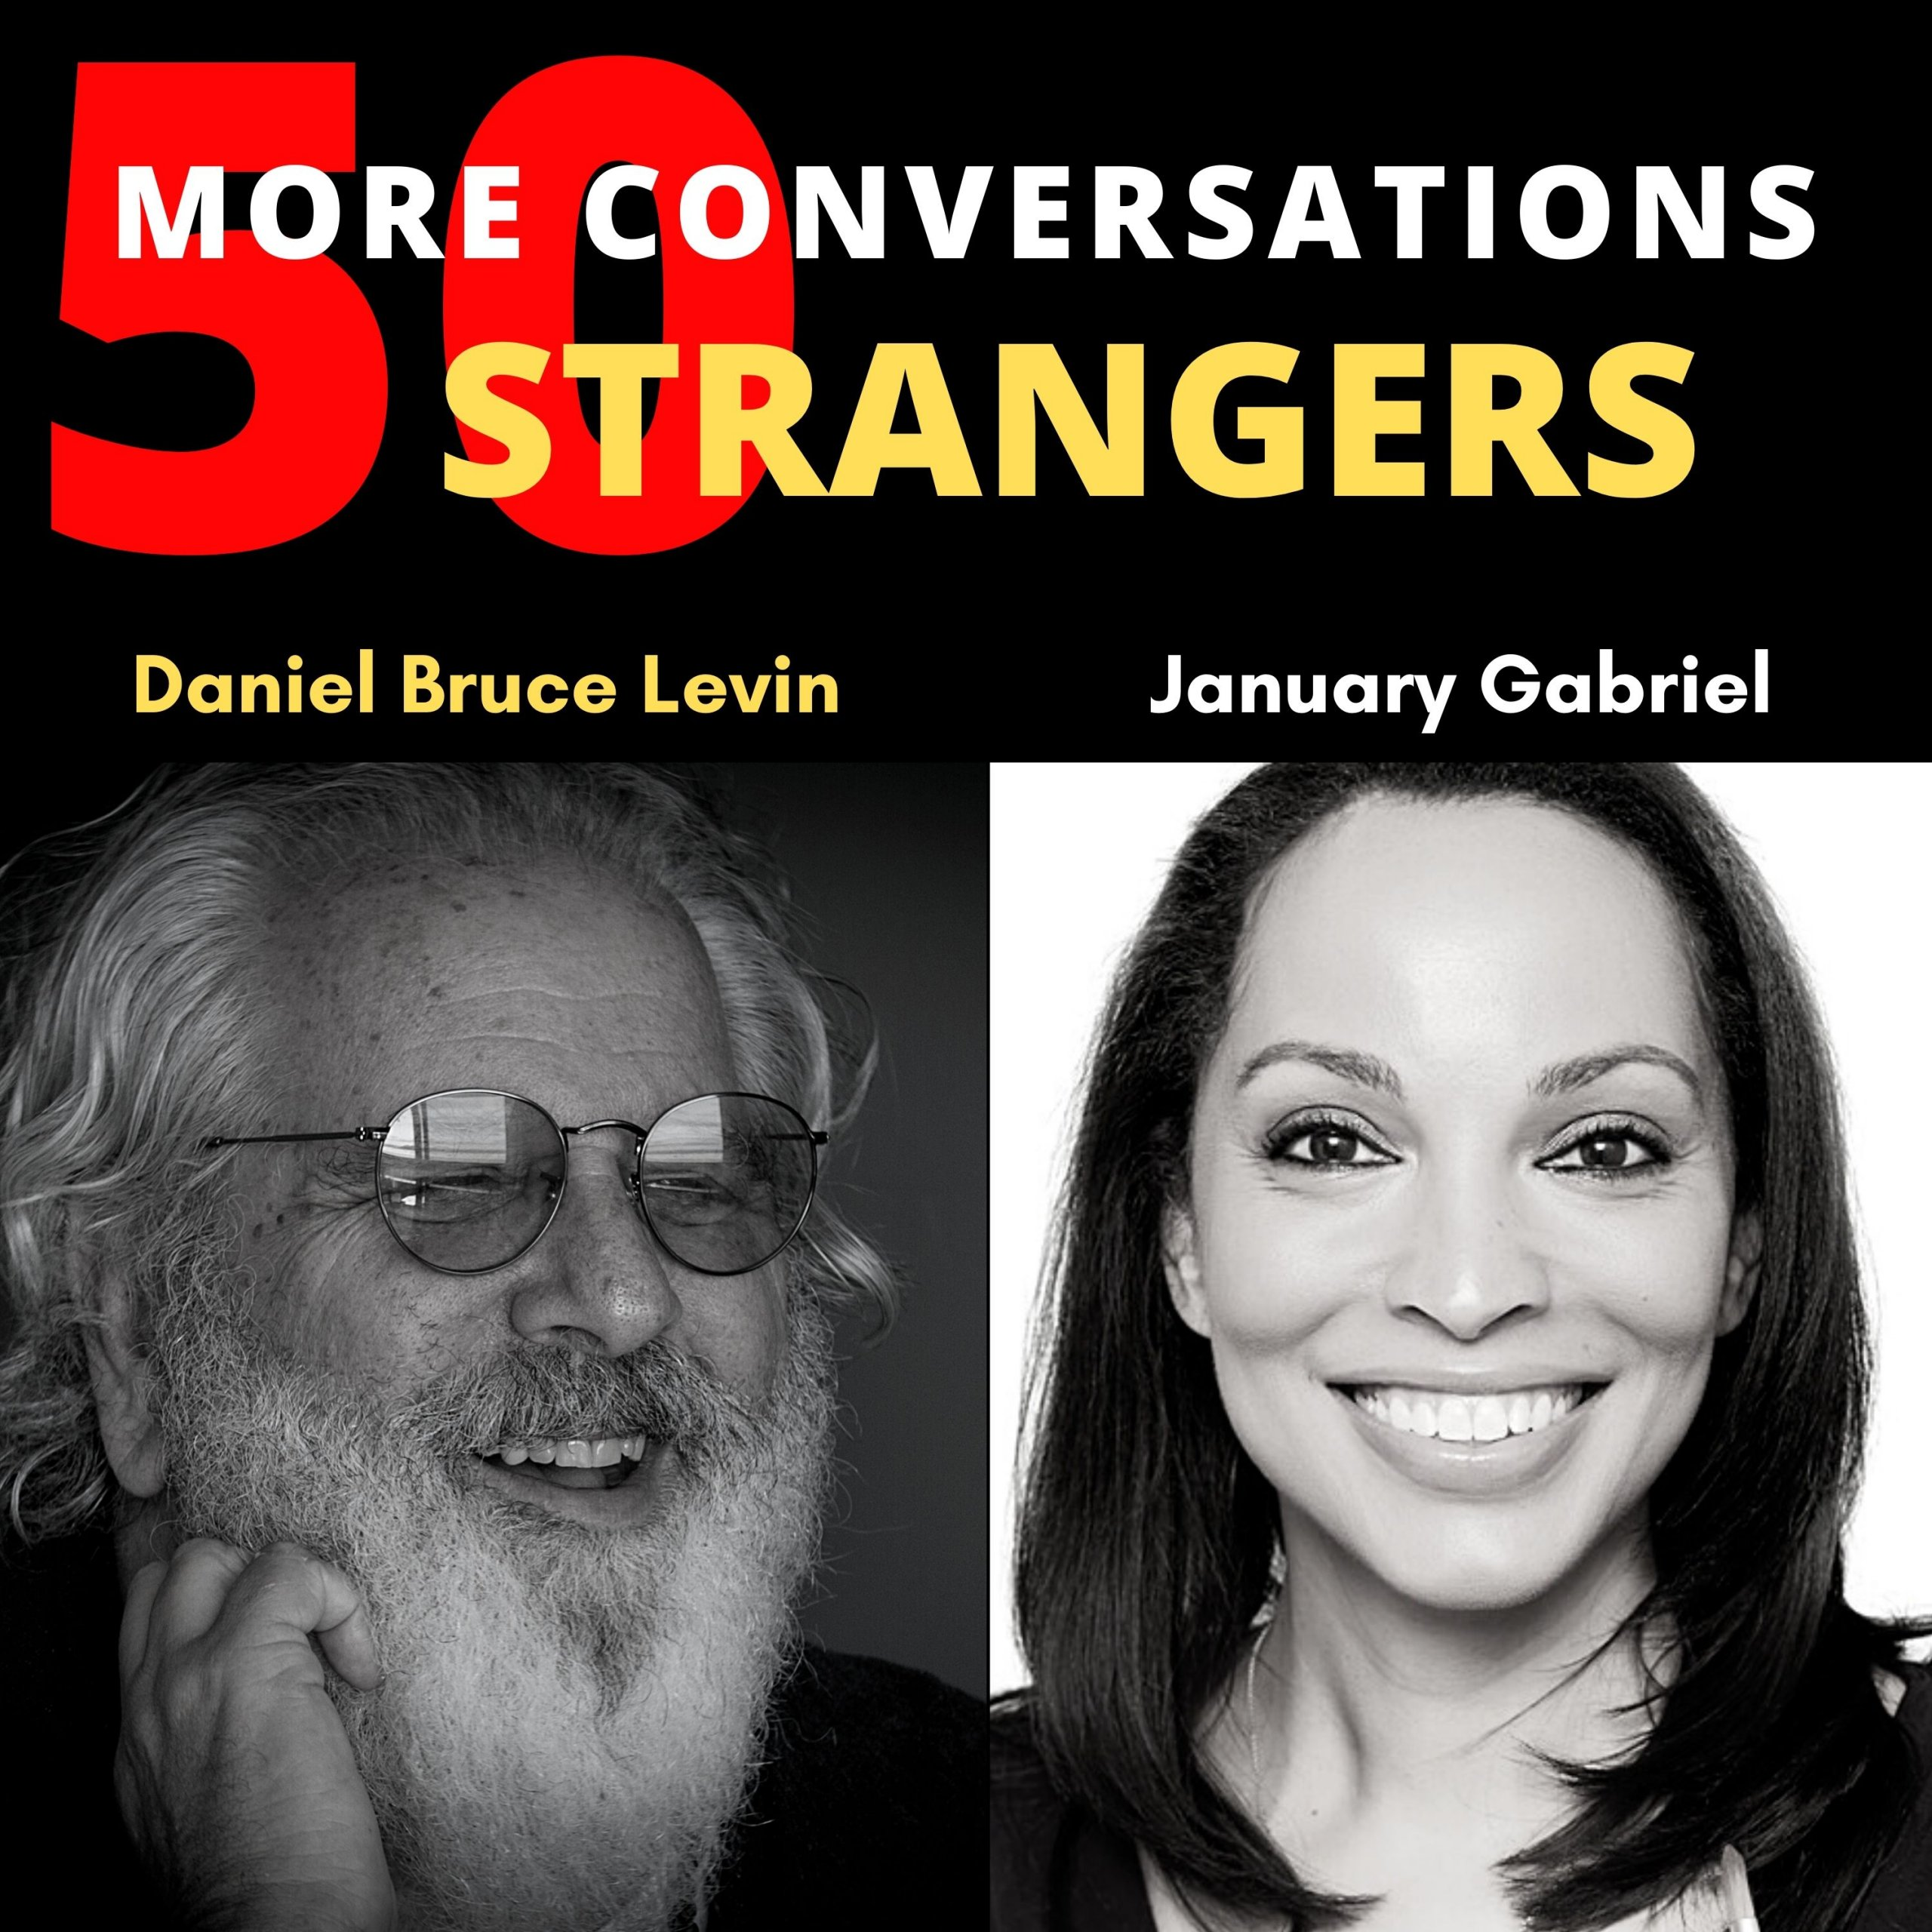 5o More Conversations with 50 More Strangers with January Gabriel